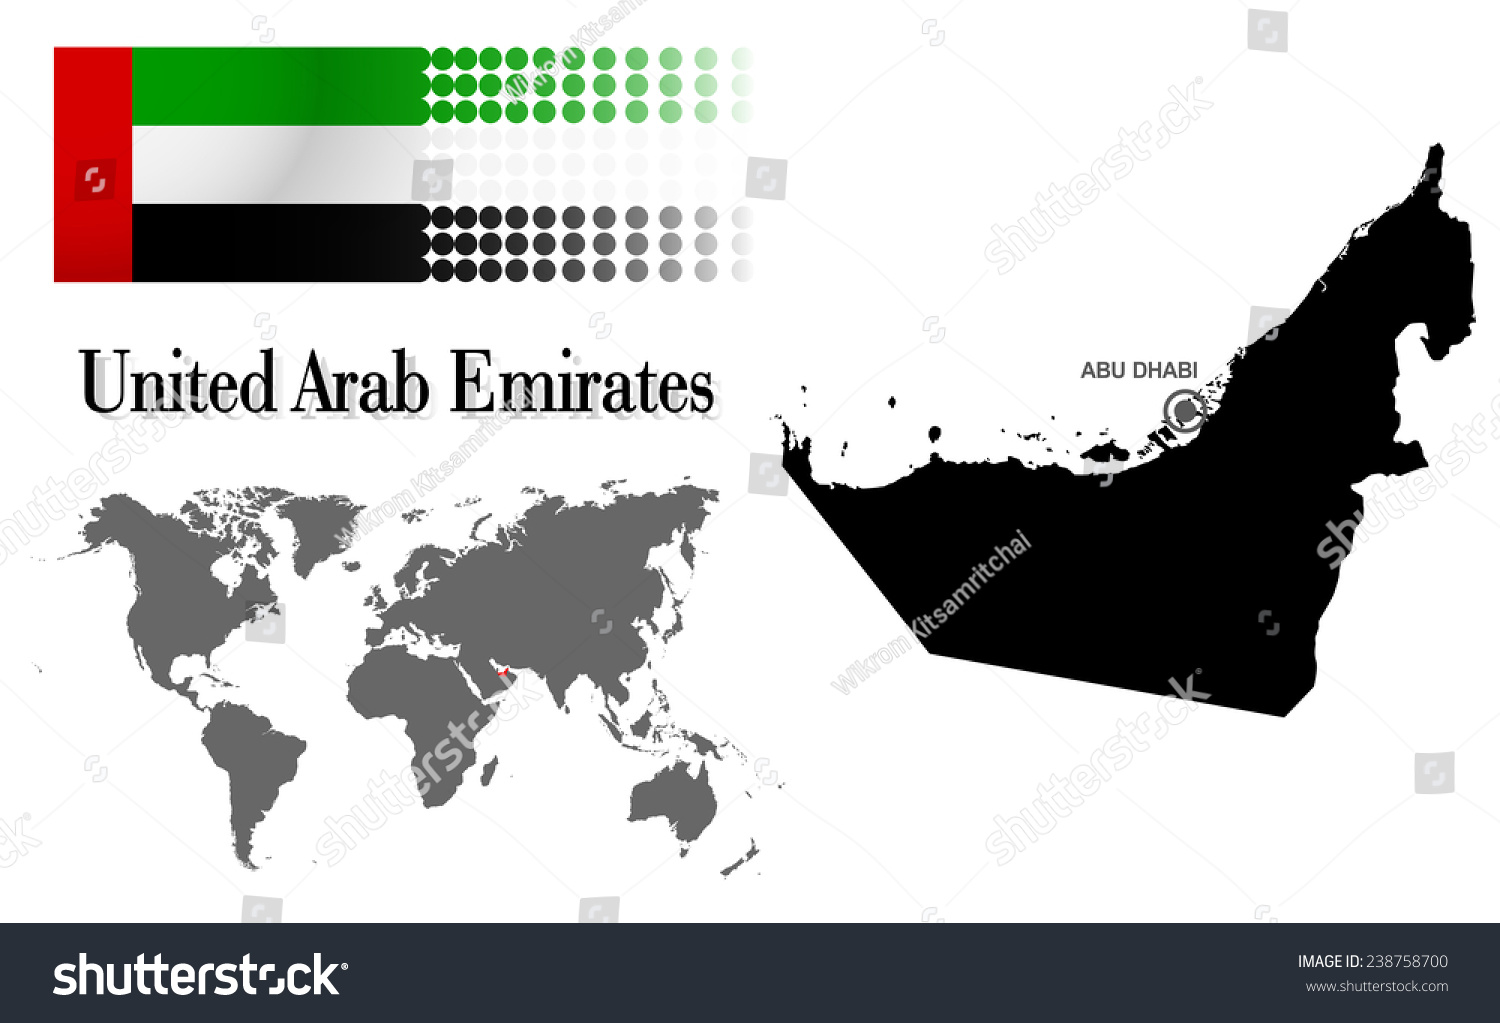 Uae info graphic flag location world stock photo photo vector uae info graphic with flag location in world map map and the capital gumiabroncs Choice Image